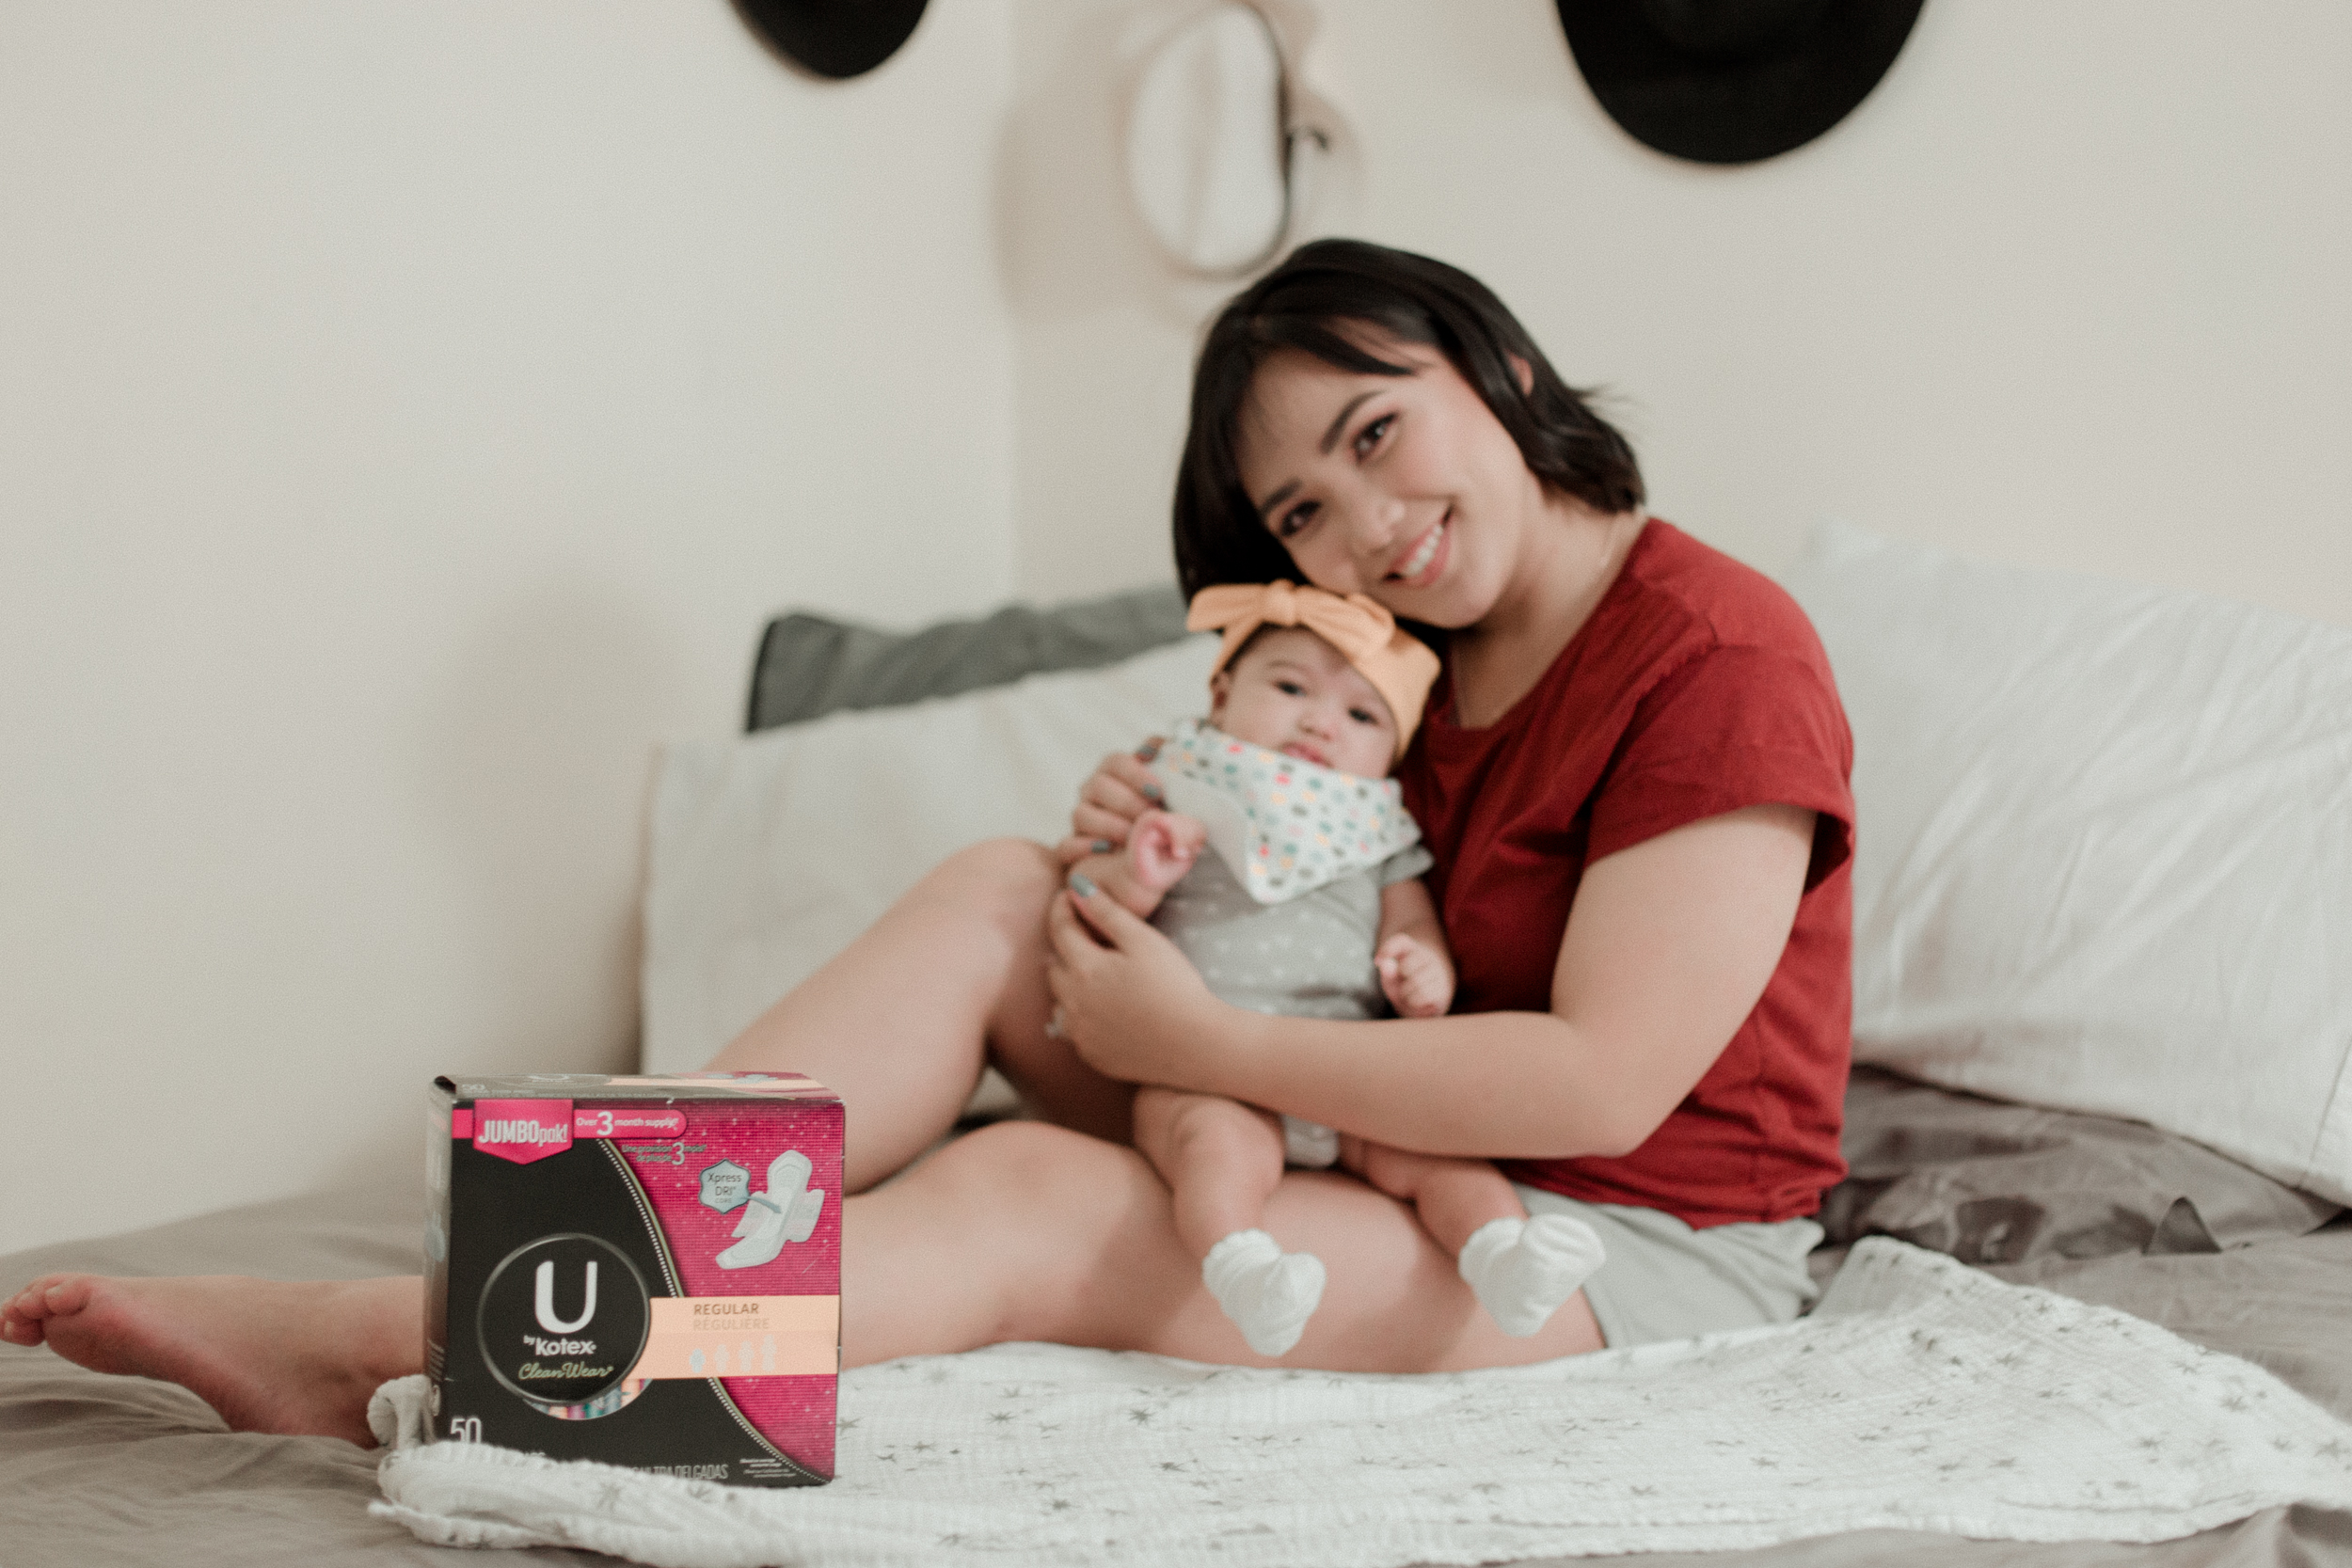 5 Million Period Products Donated by U by Kotex, Thanks to You!